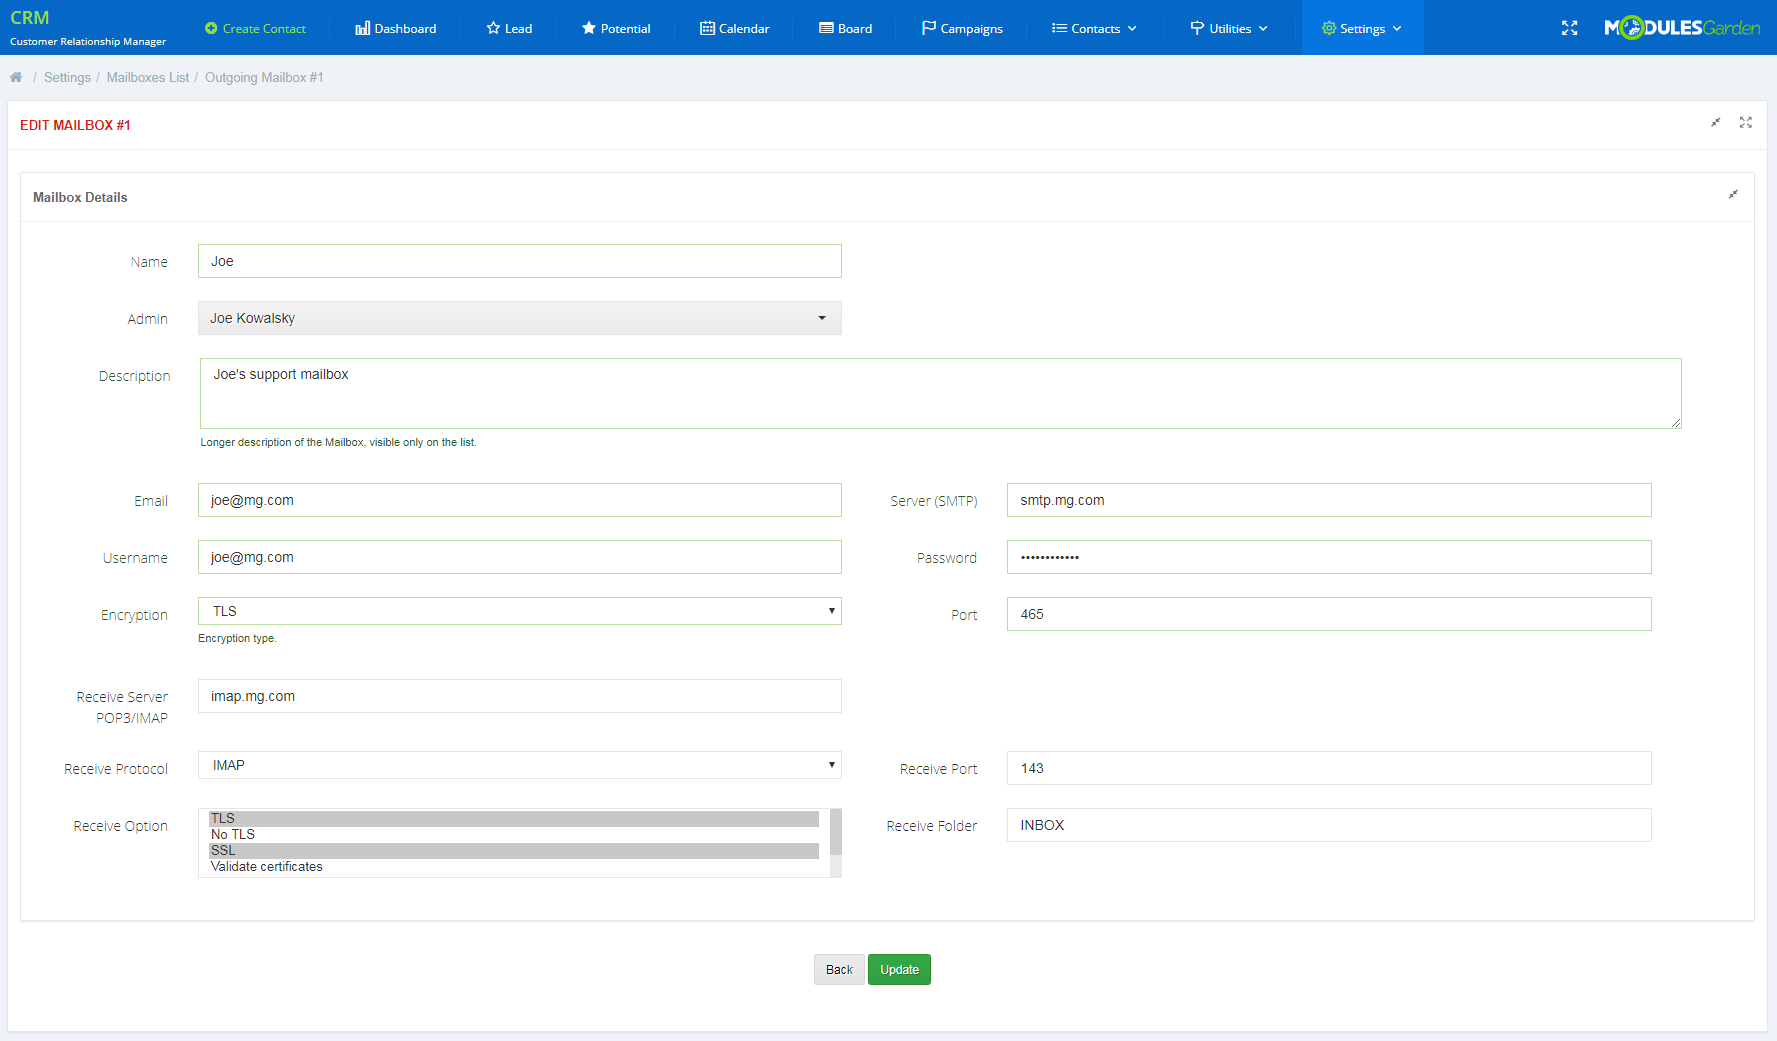 CRM For WHMCS: Screen 20